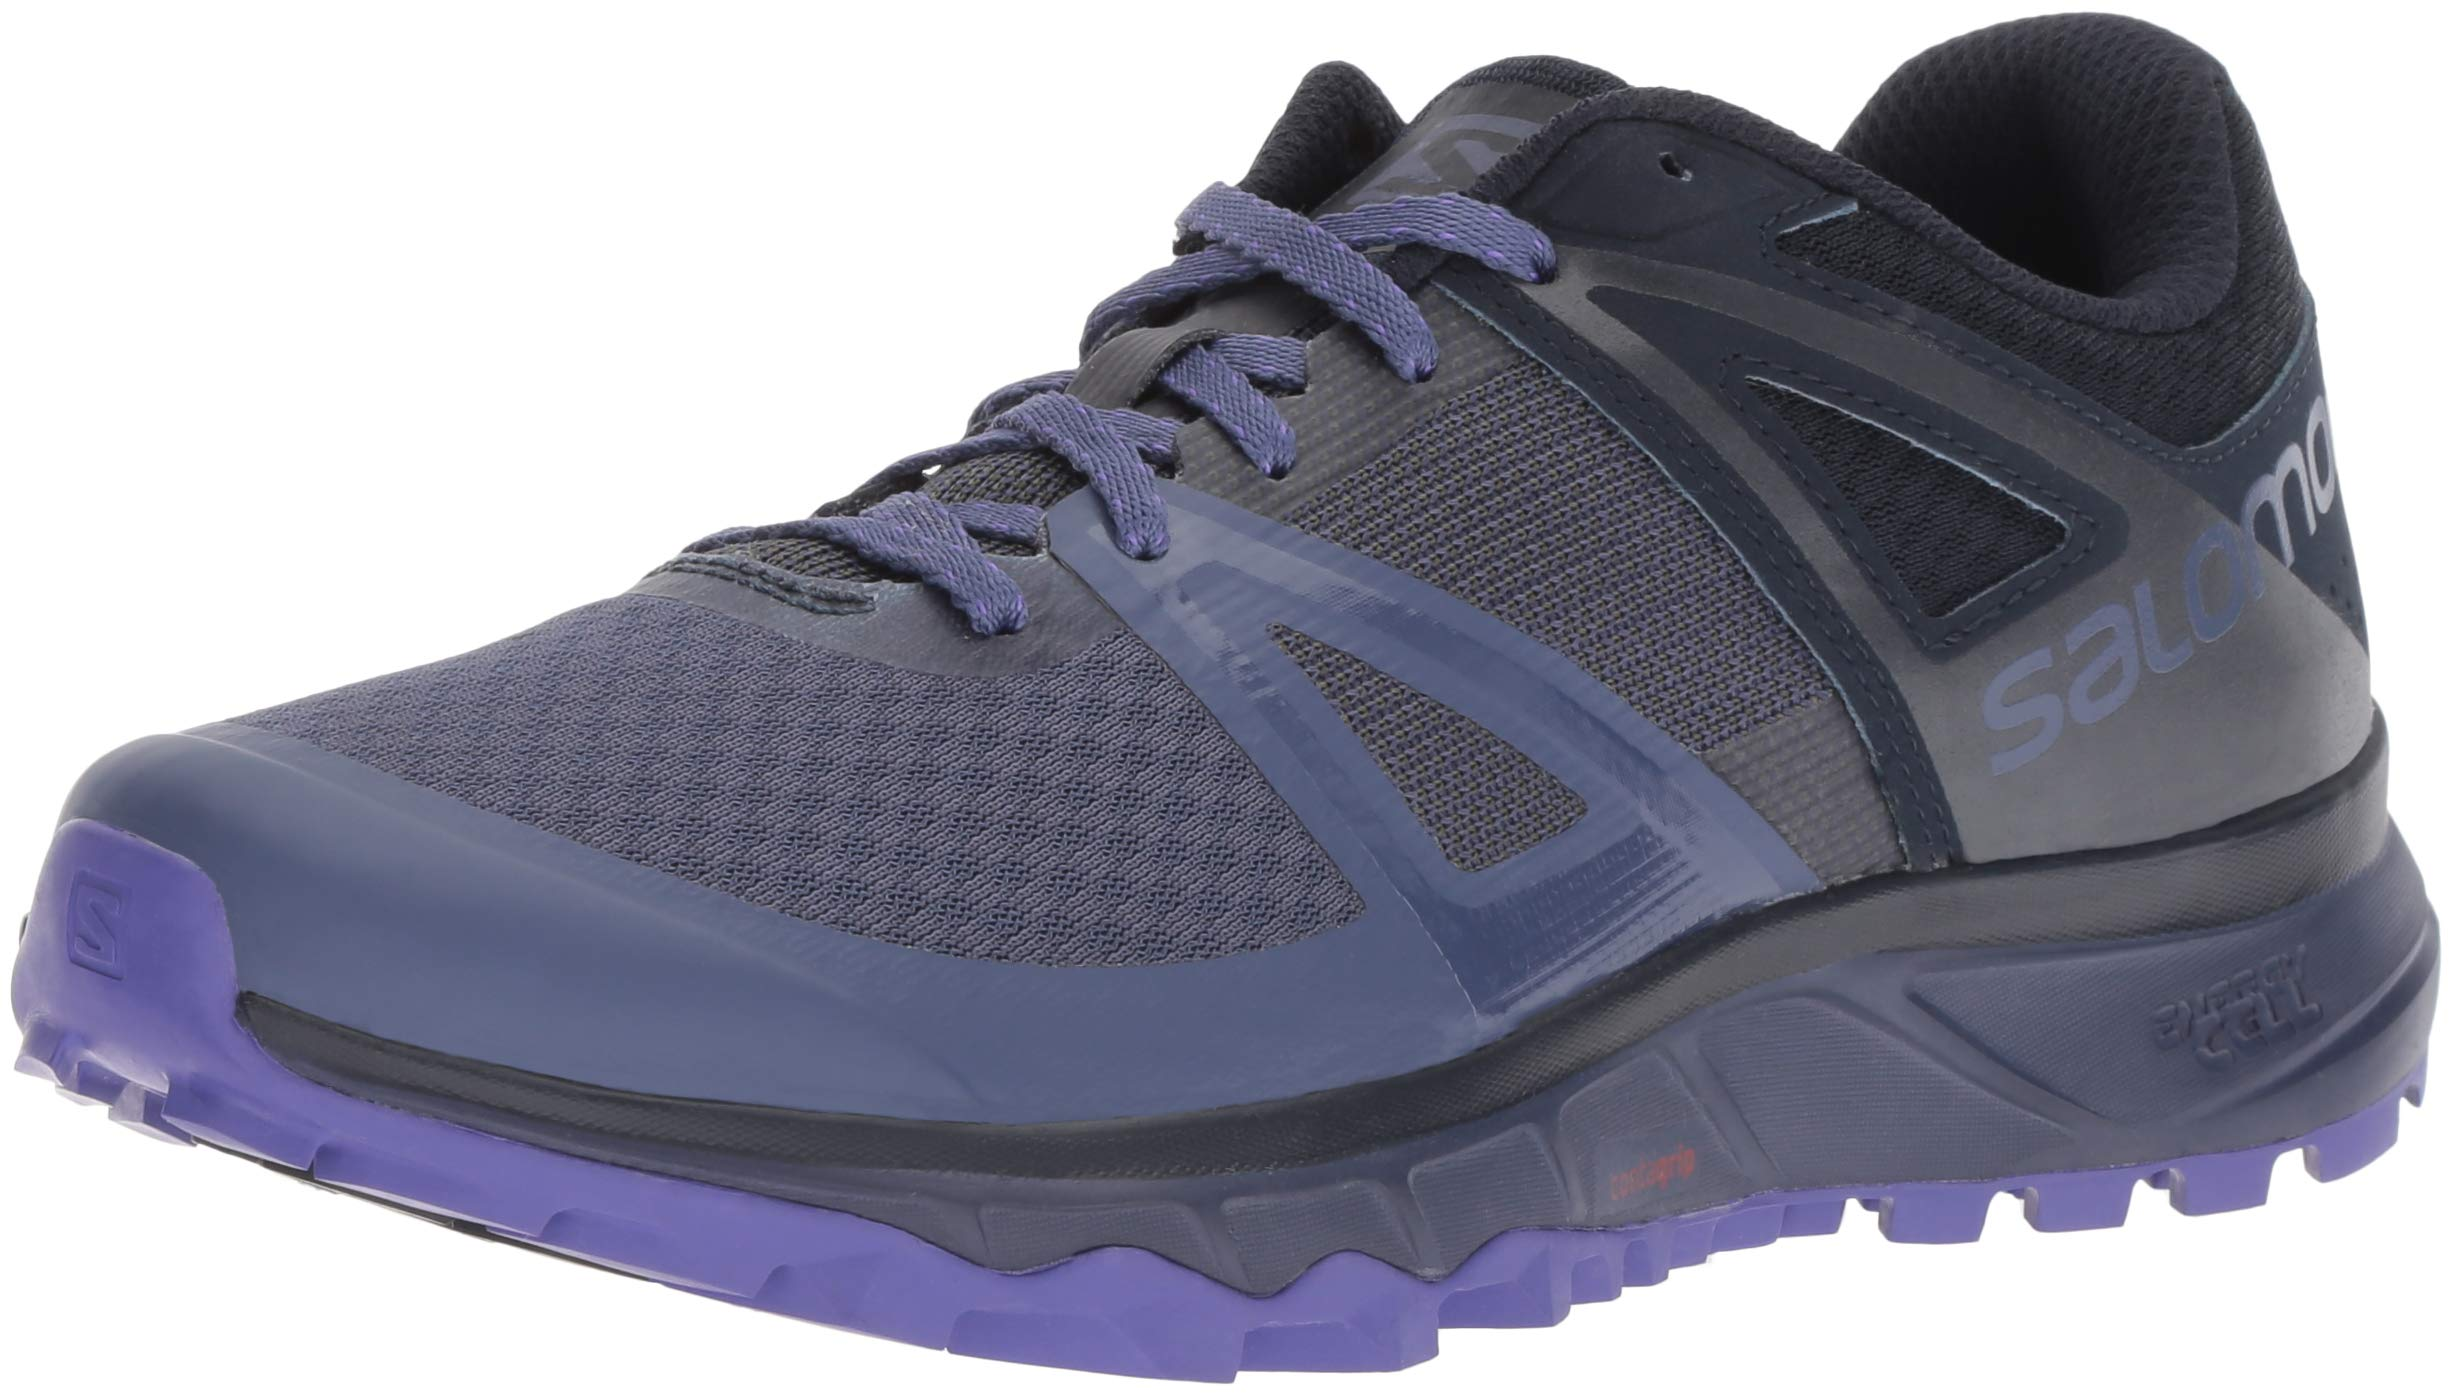 Salomon Women's Trailster W Trail Running Shoe, Crown Blue/Navy Blazer/Purple Opulence, 12 B US